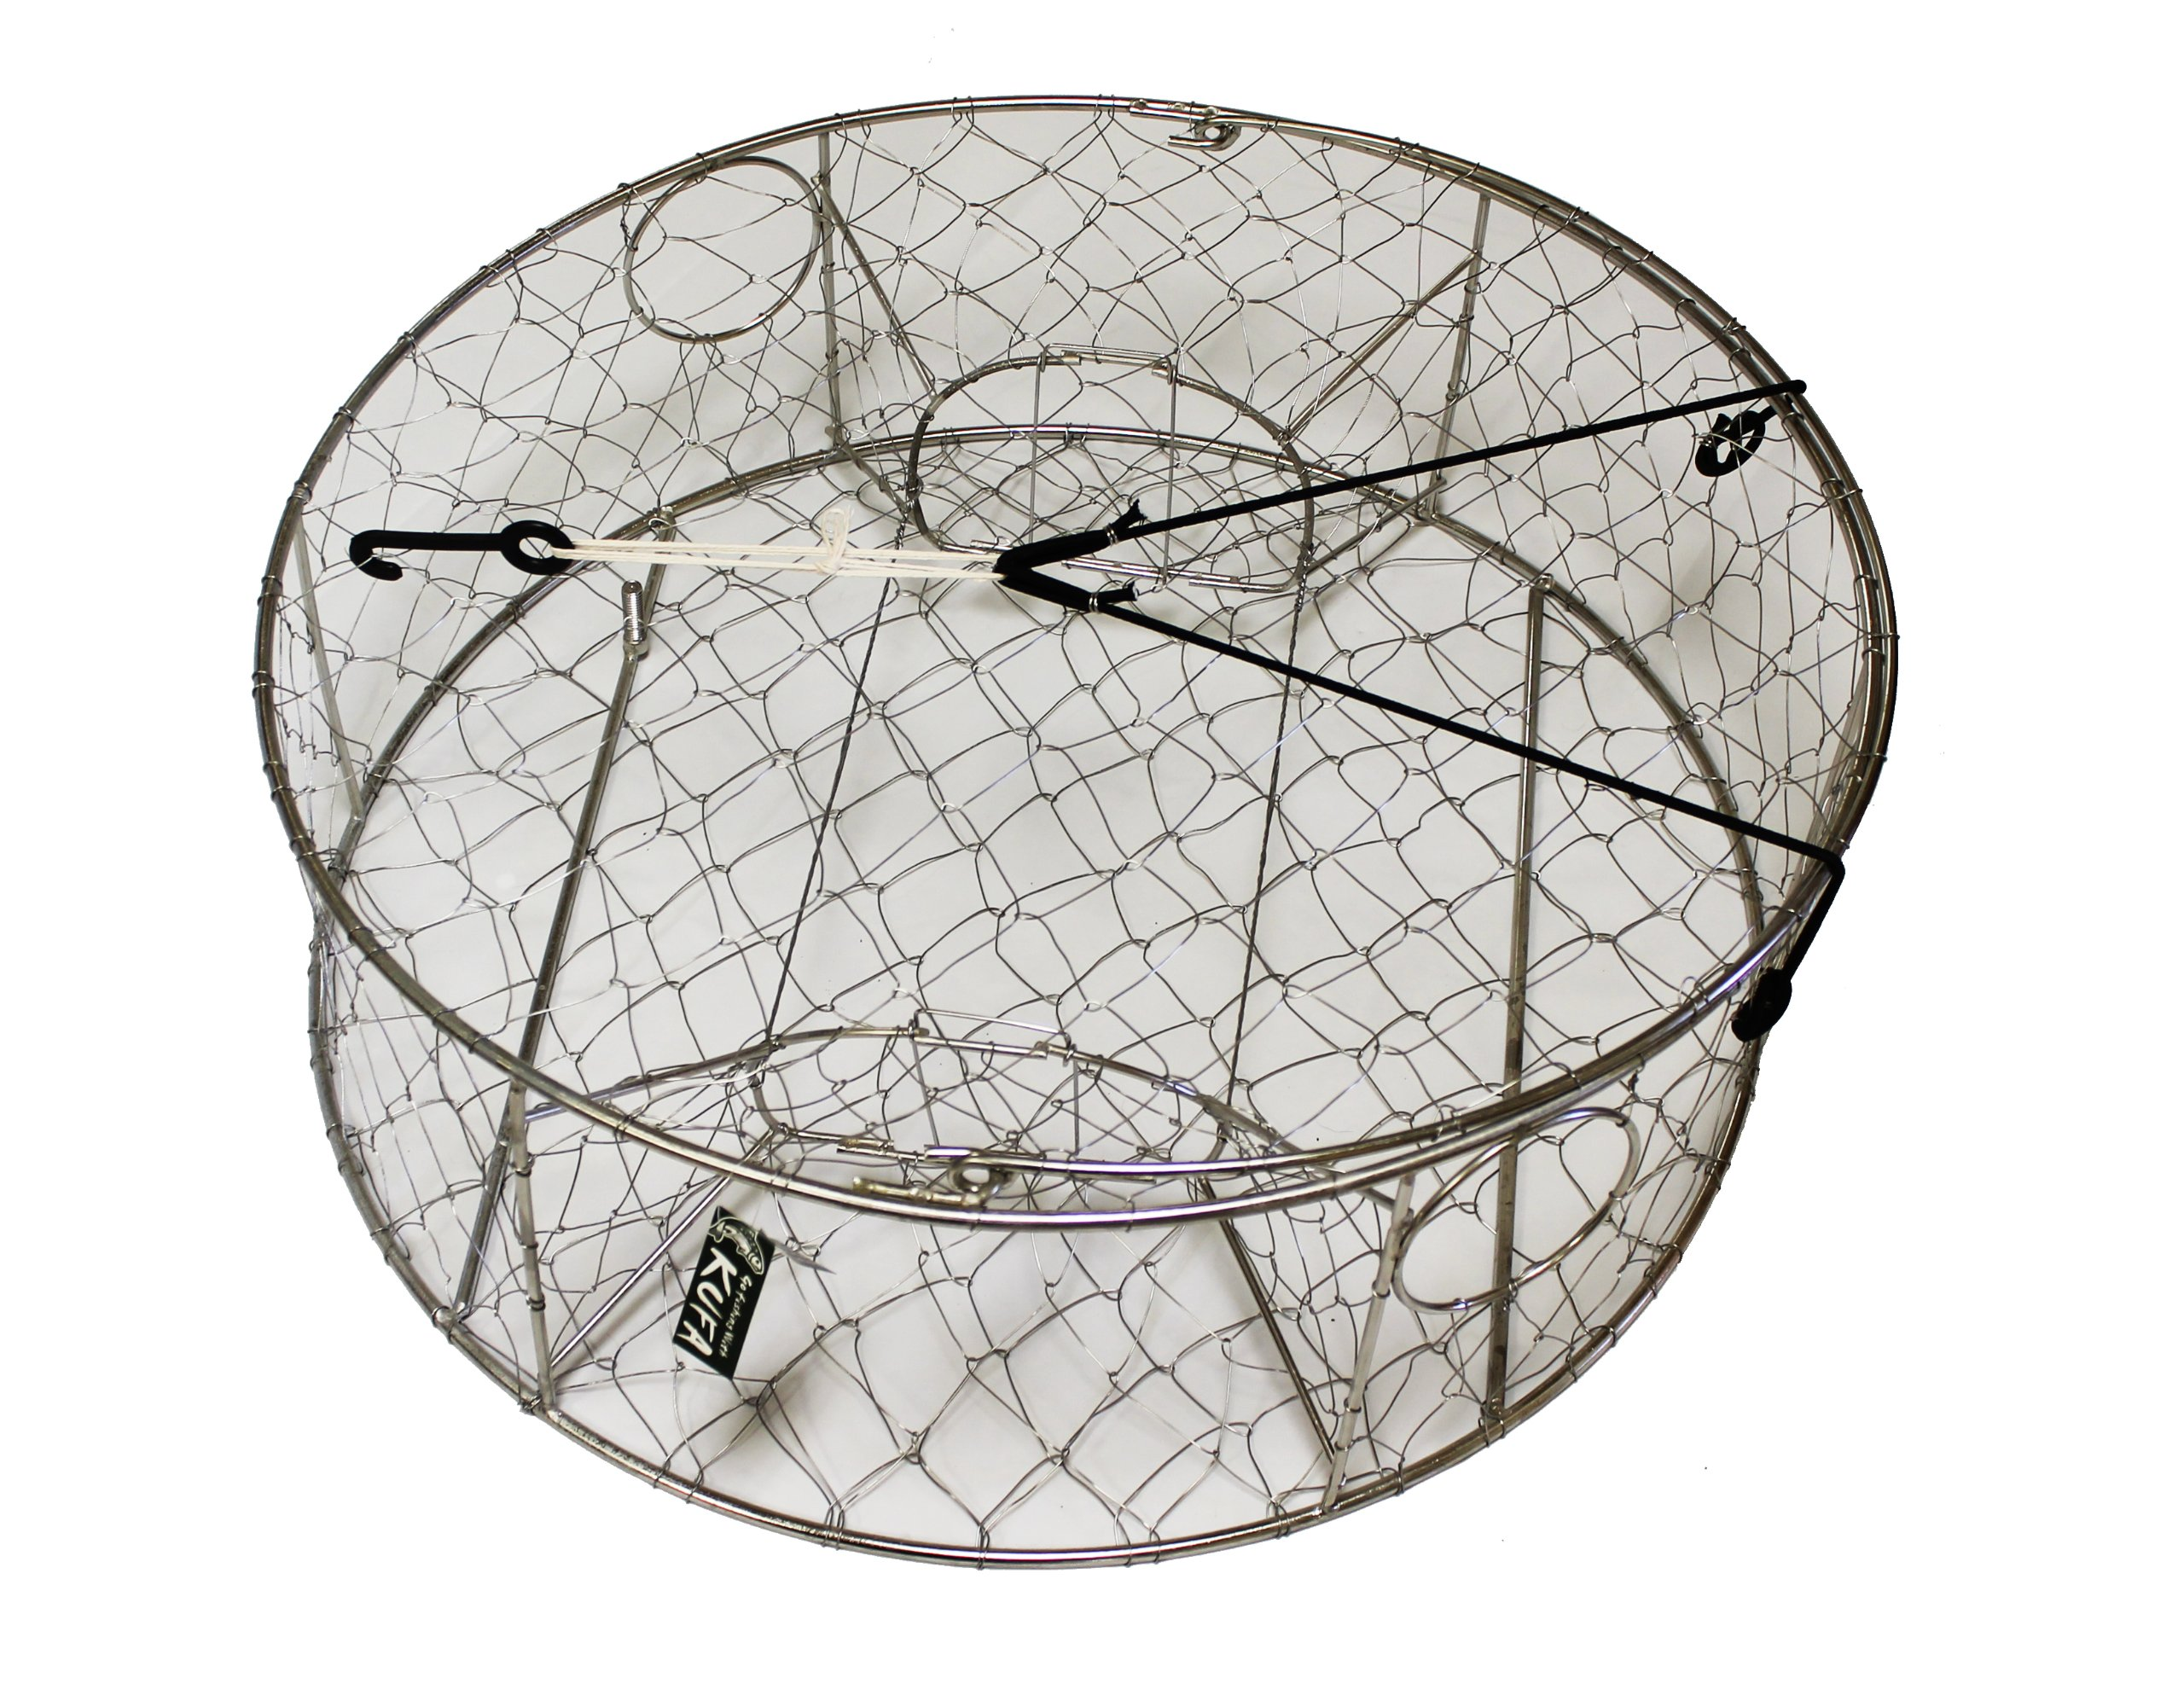 KUFA Stainless steel wire crab trap (ø30''x10'') CT100 by KUFA Sports